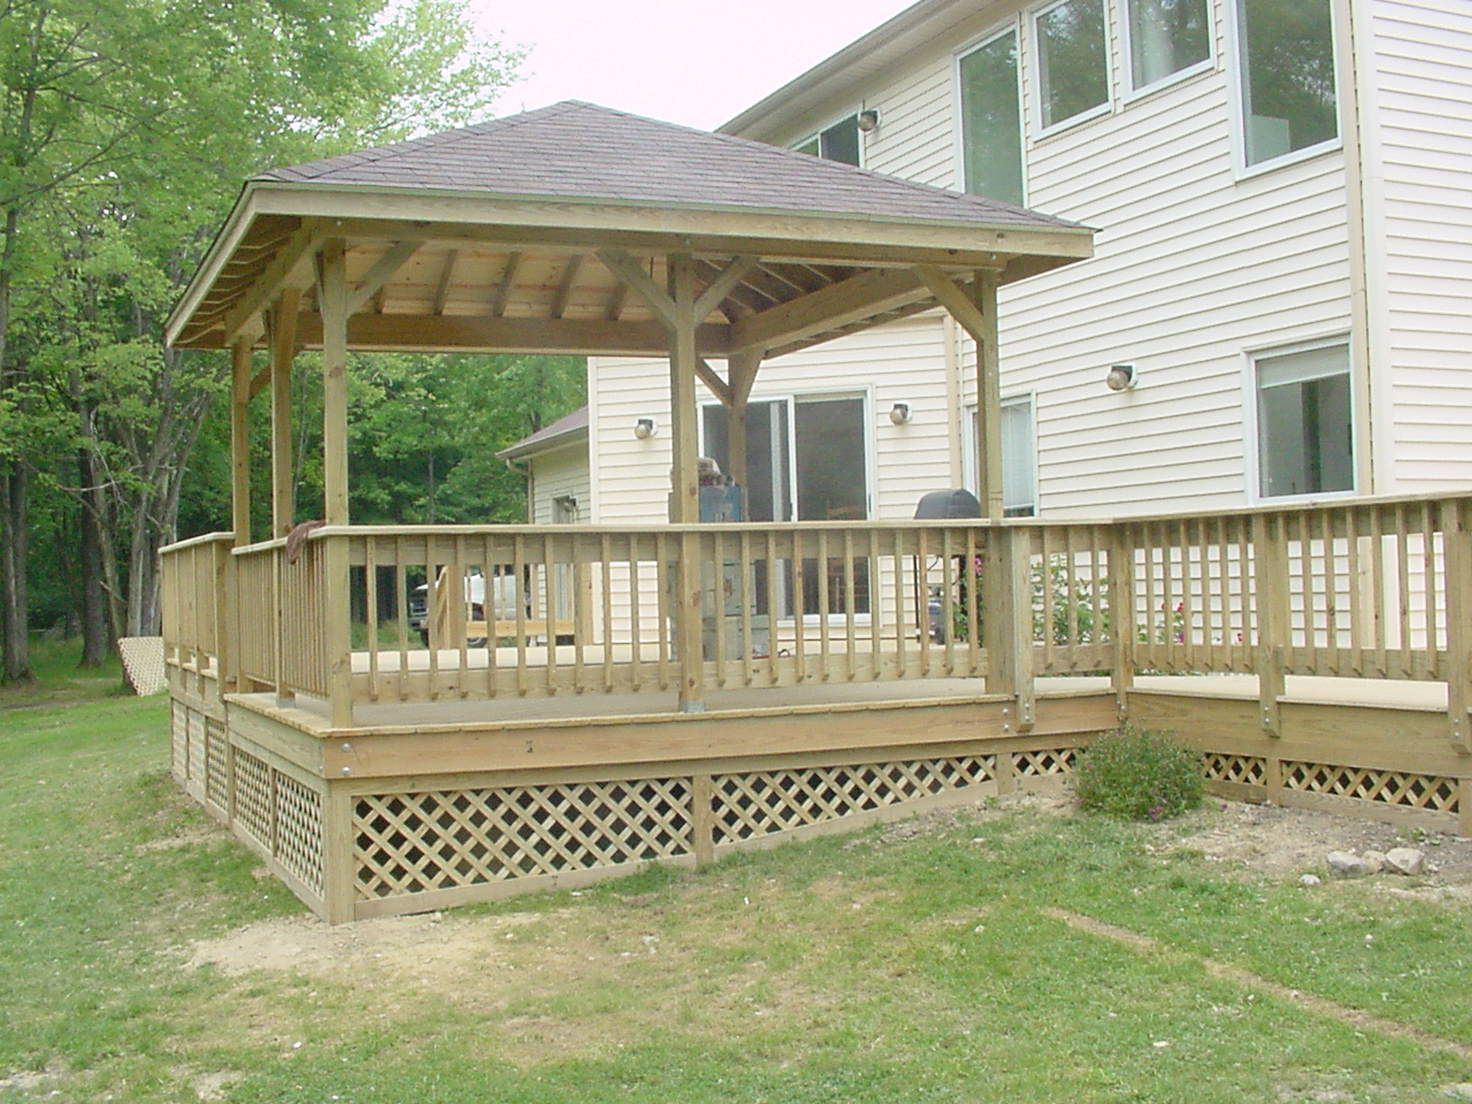 Lattice Wood Deck Along With White Wood Siding And Wooden Deck Railing